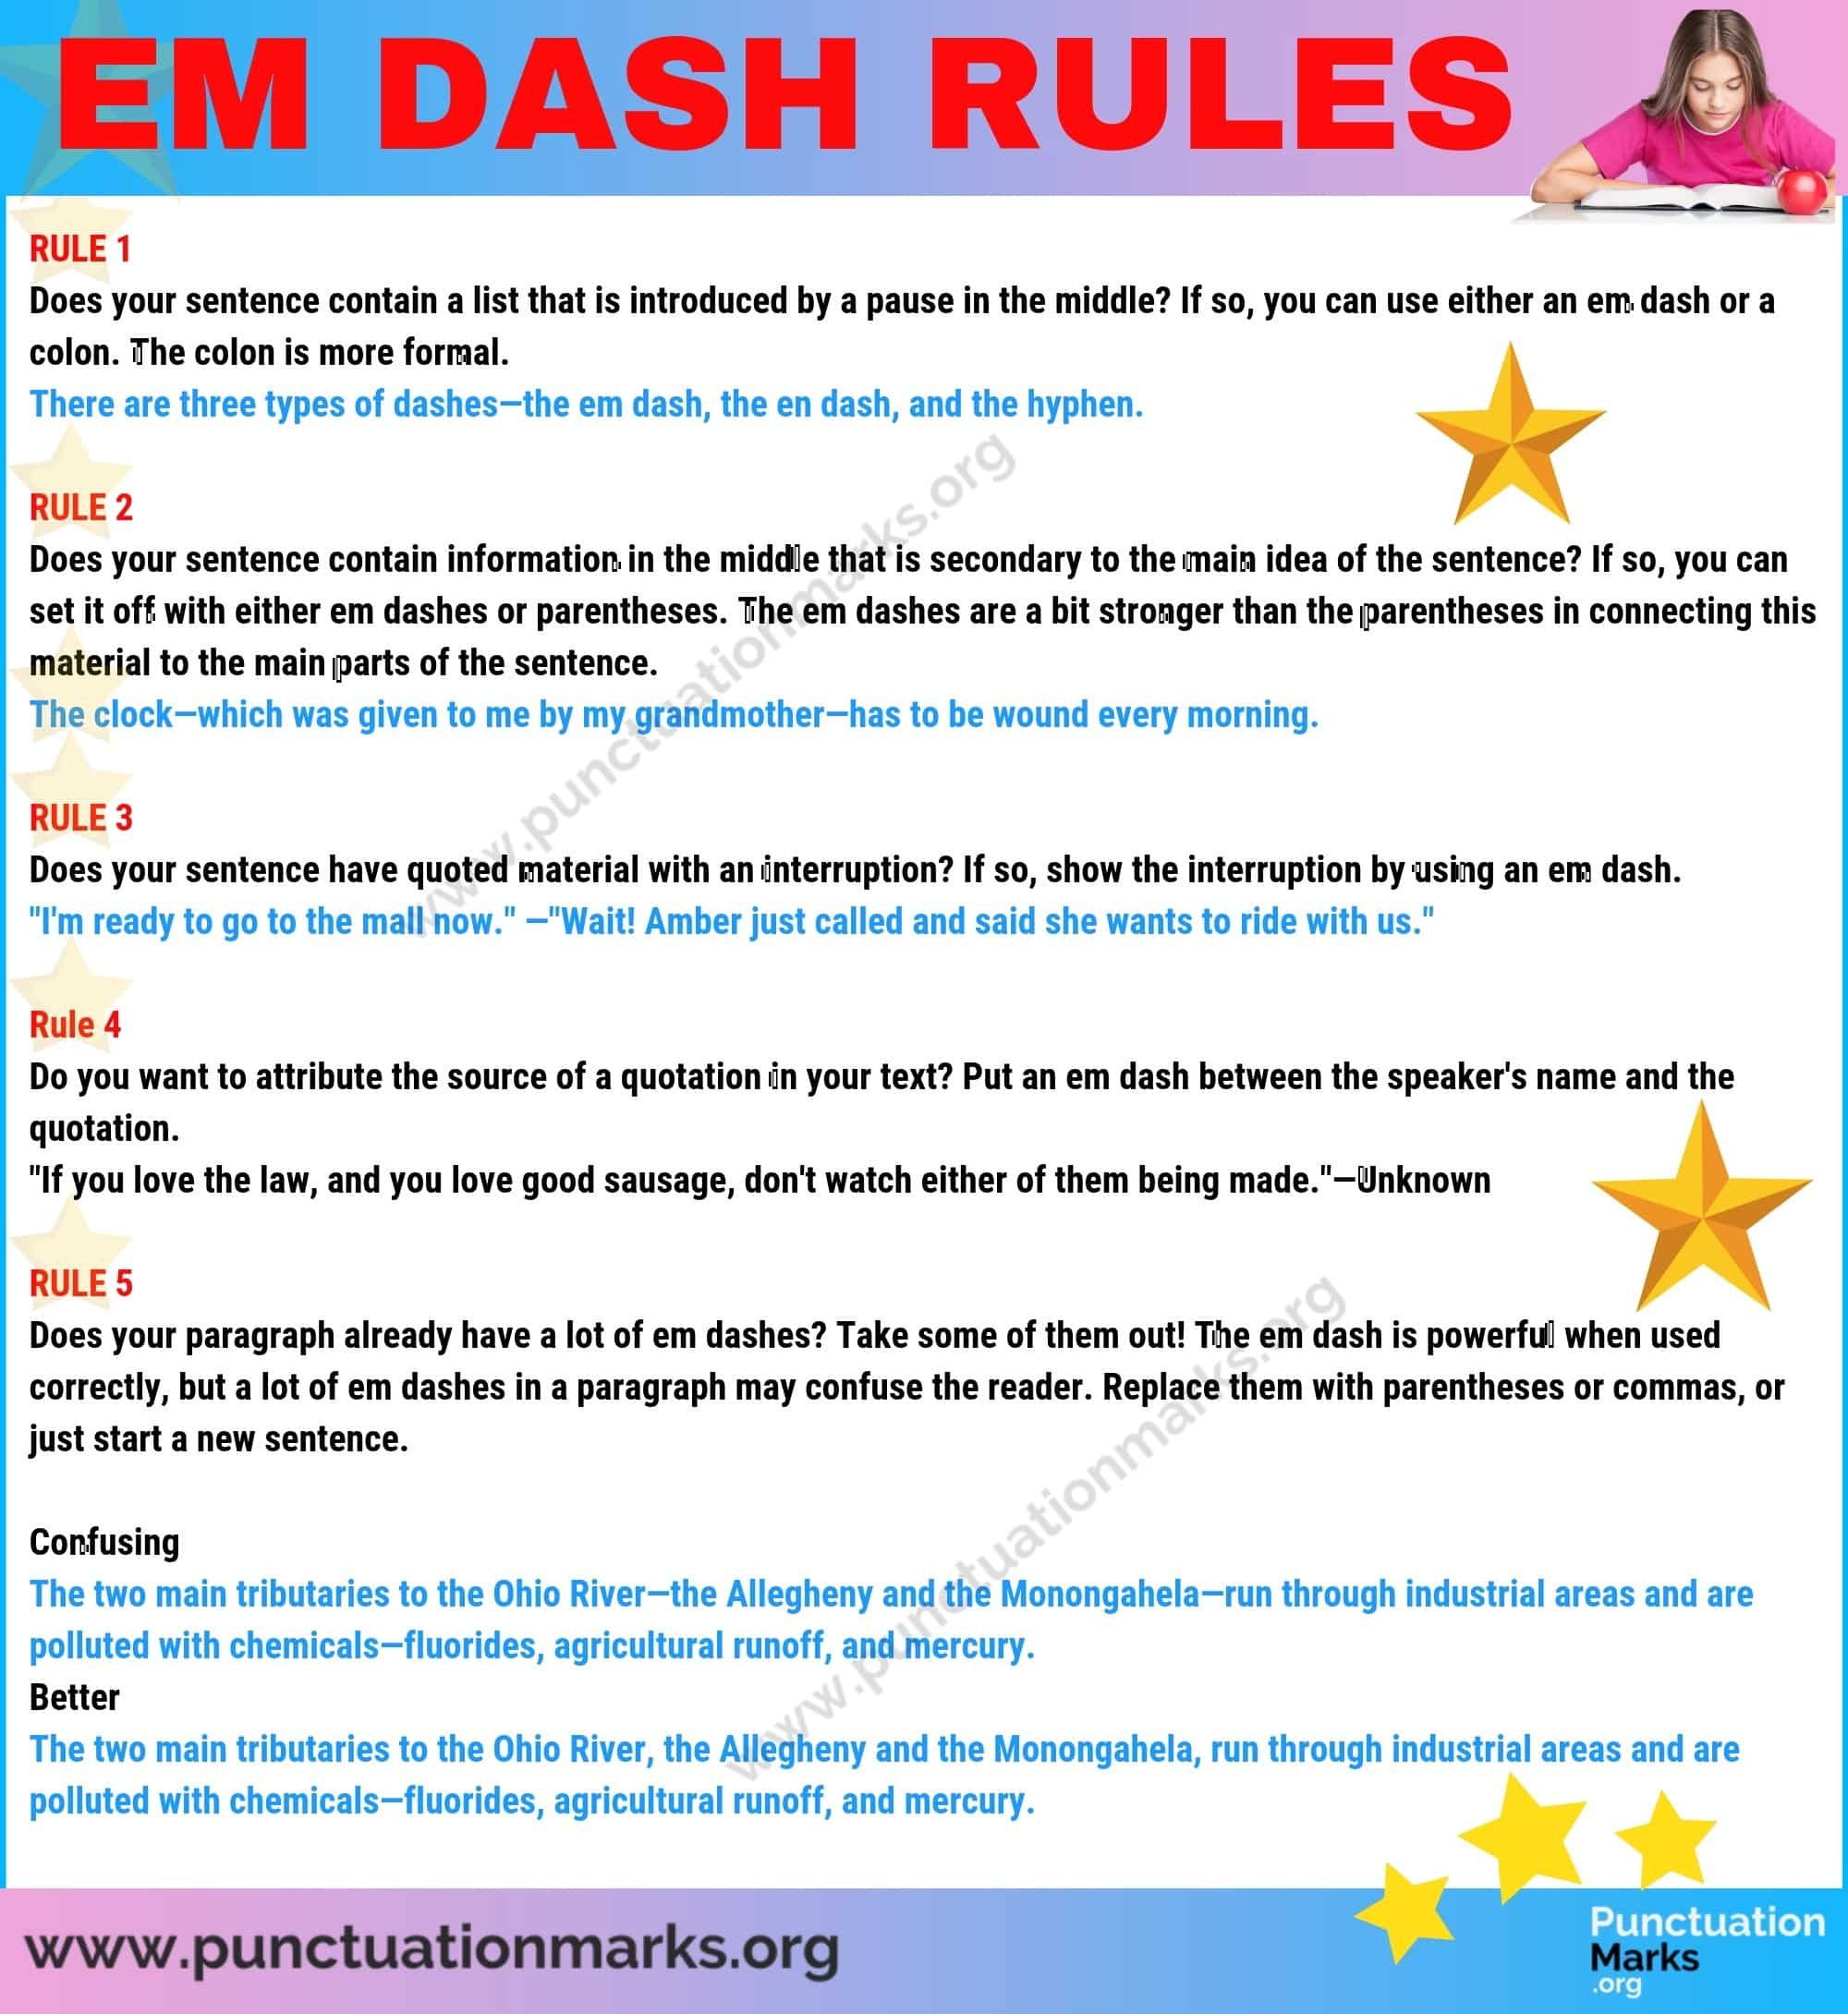 Rules for Using the Em Dash